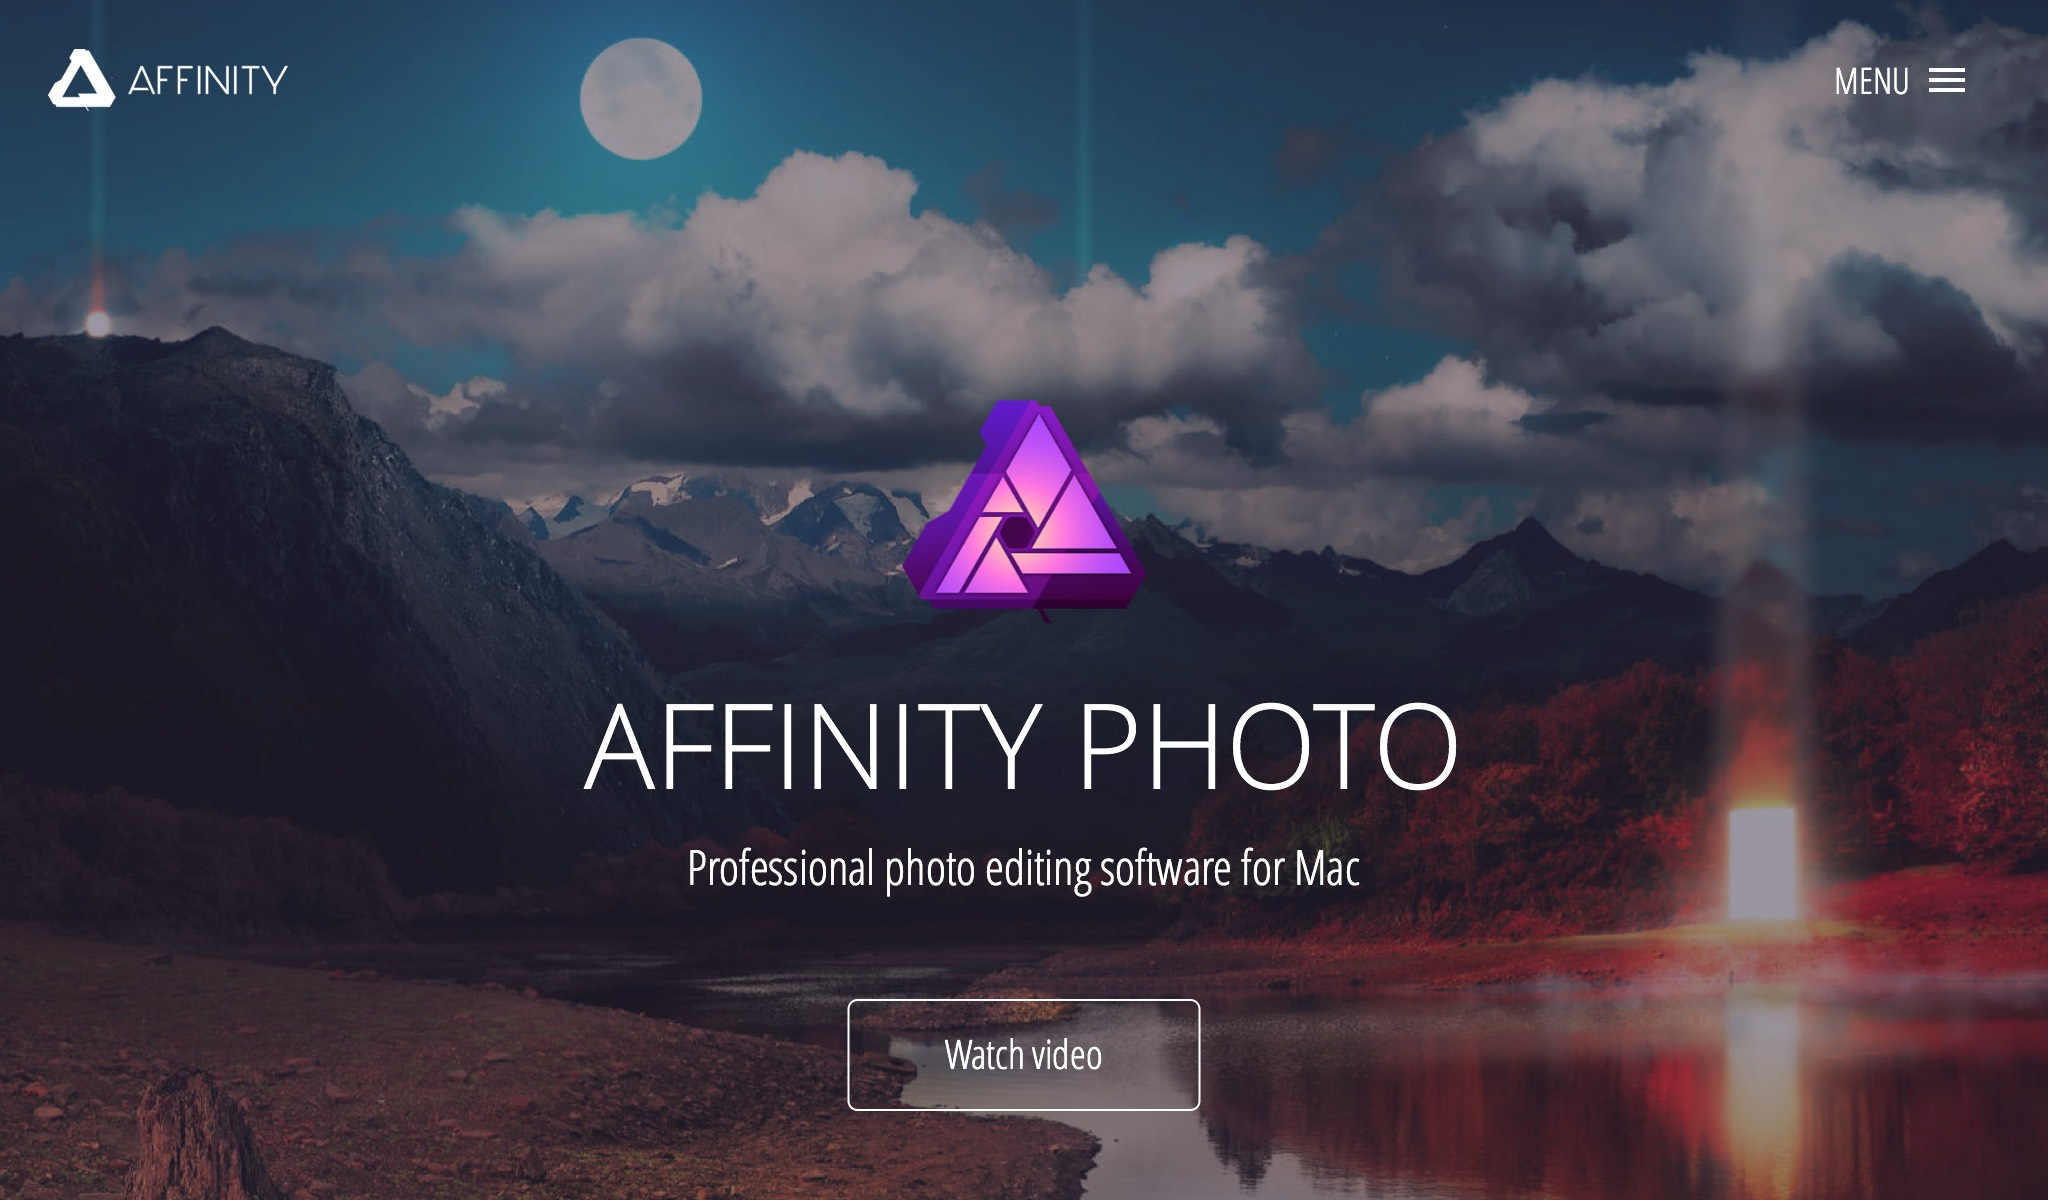 Affinity Photo - the fastest, smoothest, most precise professional image editing software, exclusively for Mac.